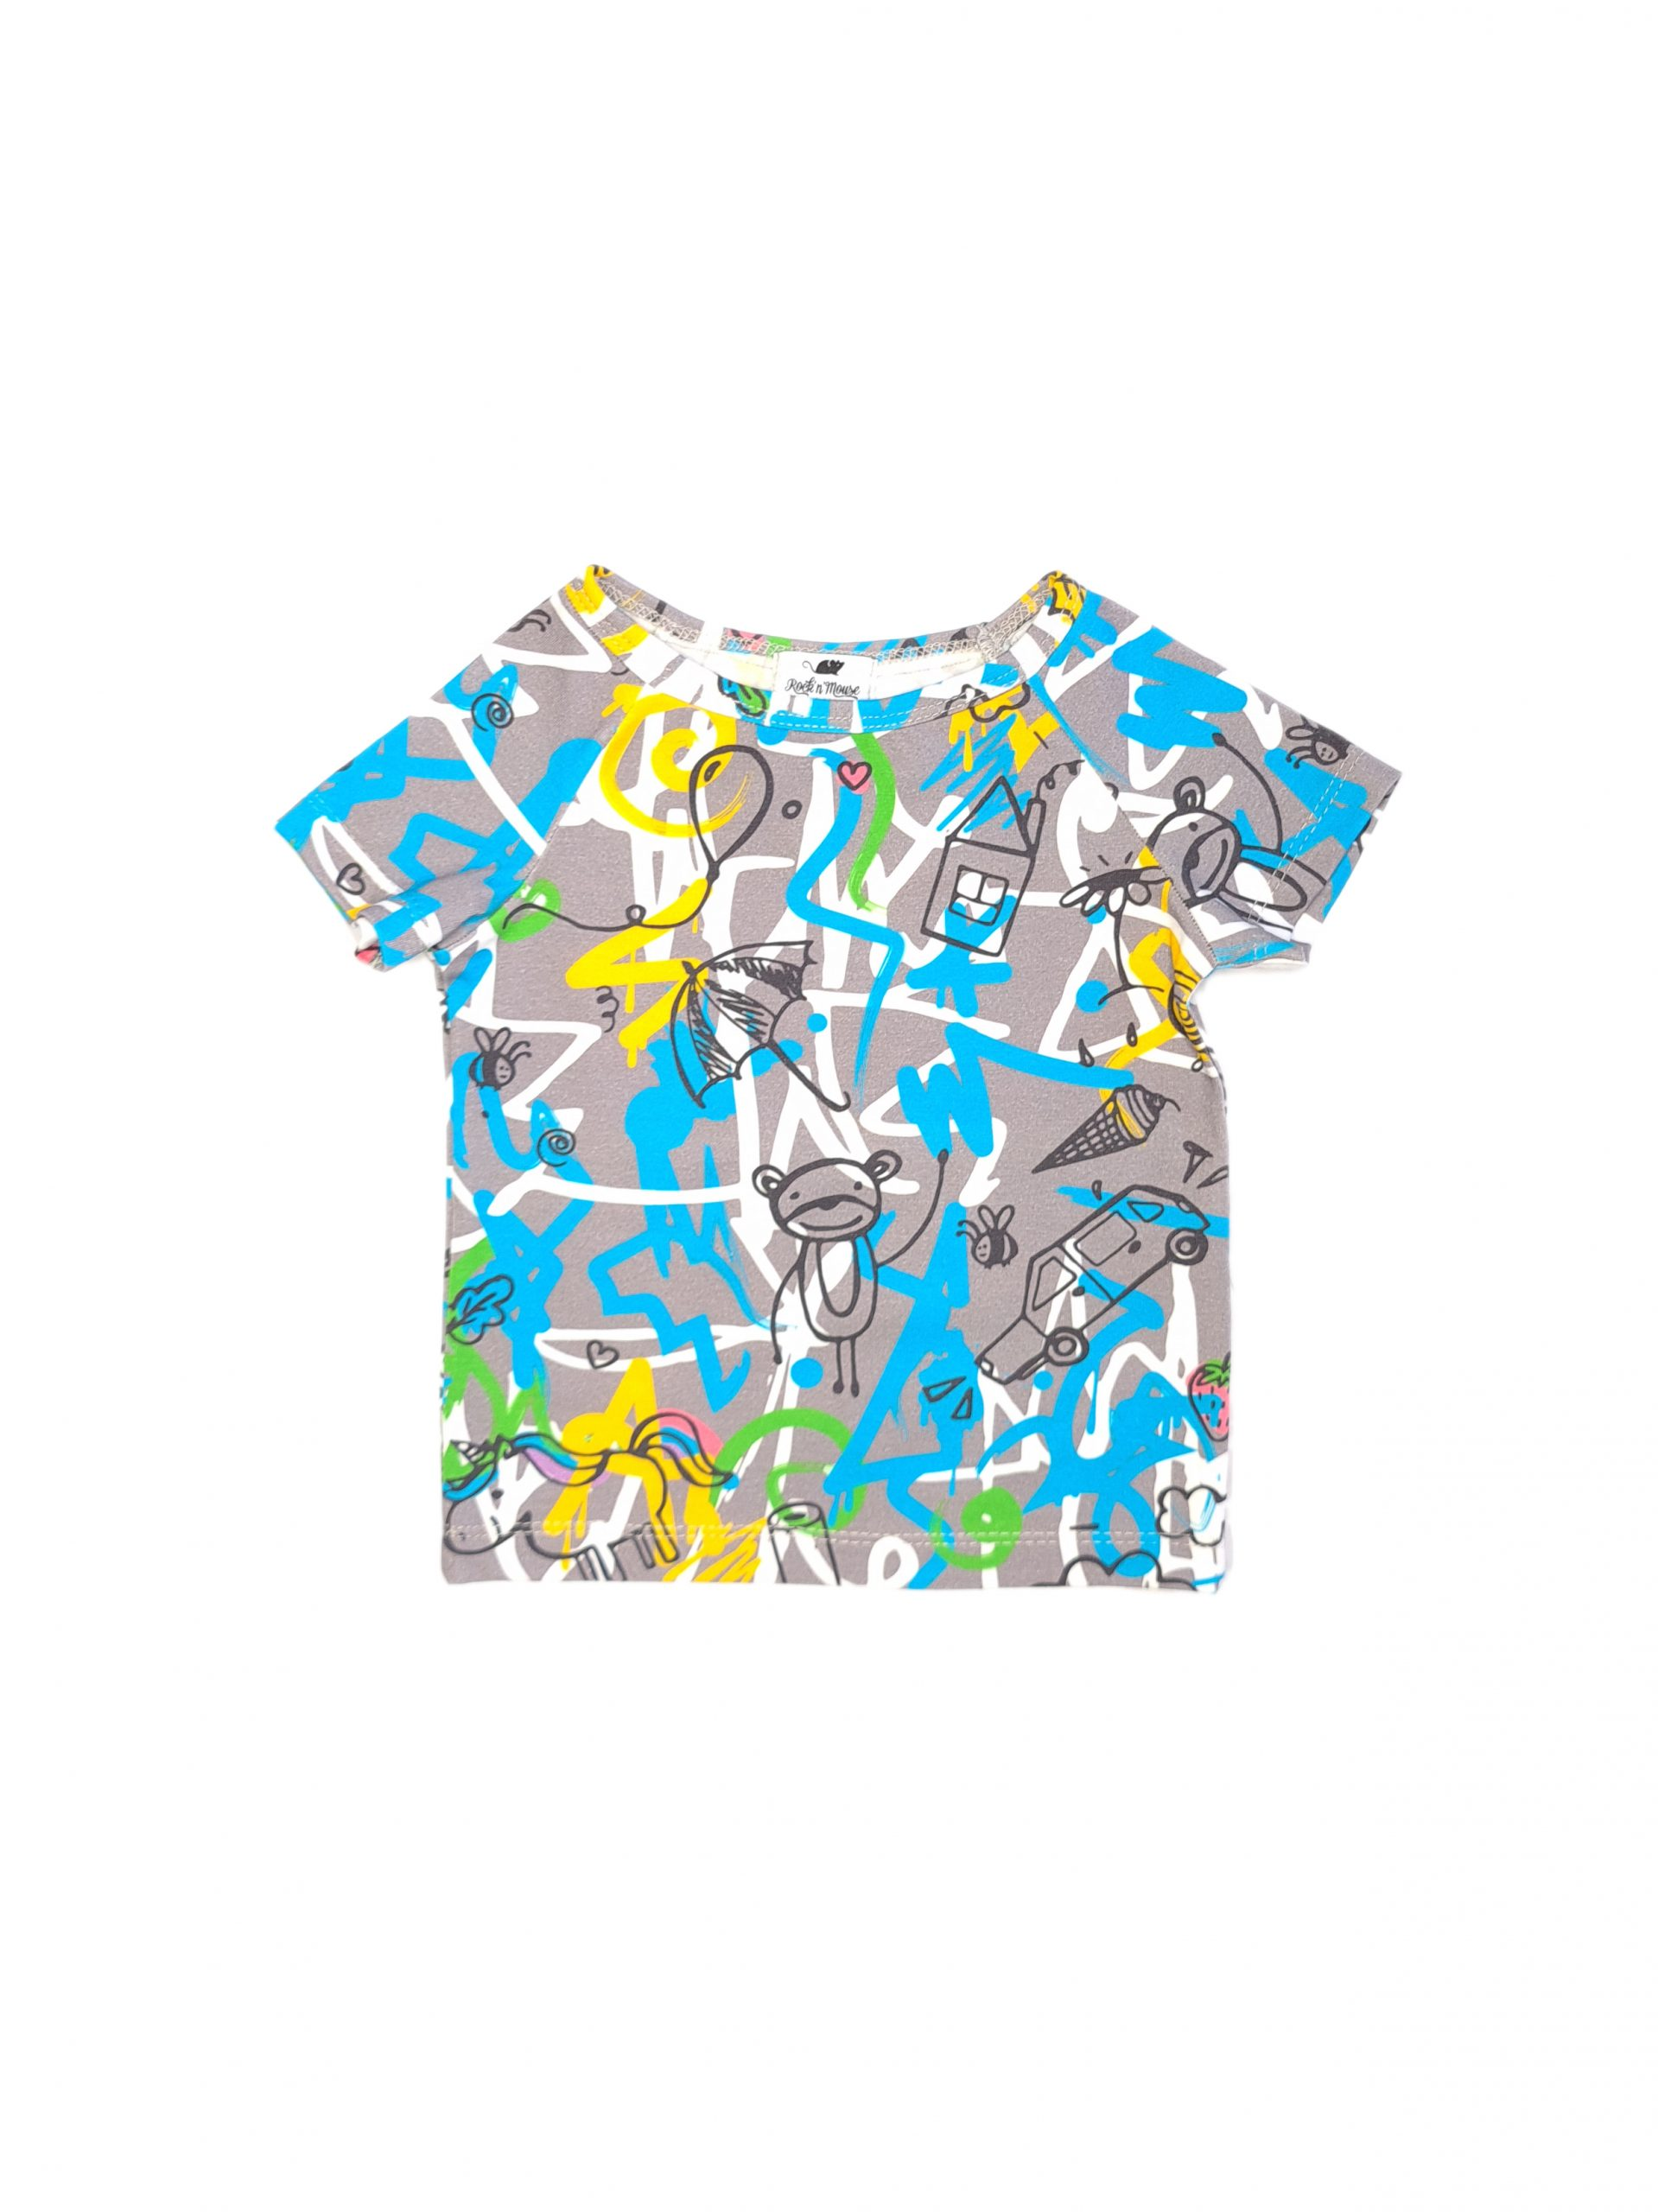 Blue expressions unisex baby, kid, boy, girl, toddler T-shirt